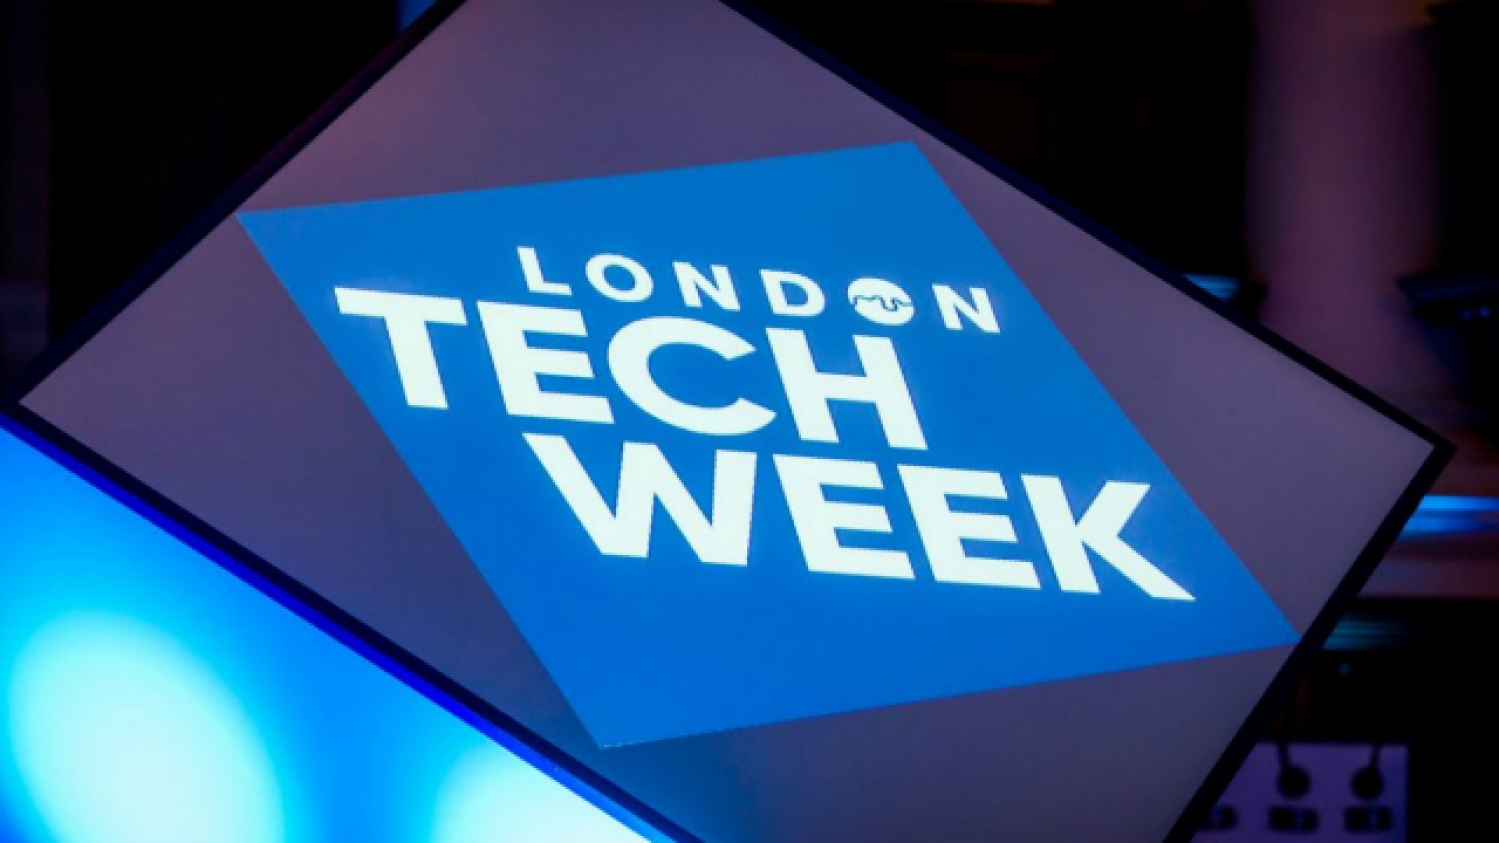 London Tech Week 2018: where creativity, talent and innovation come together